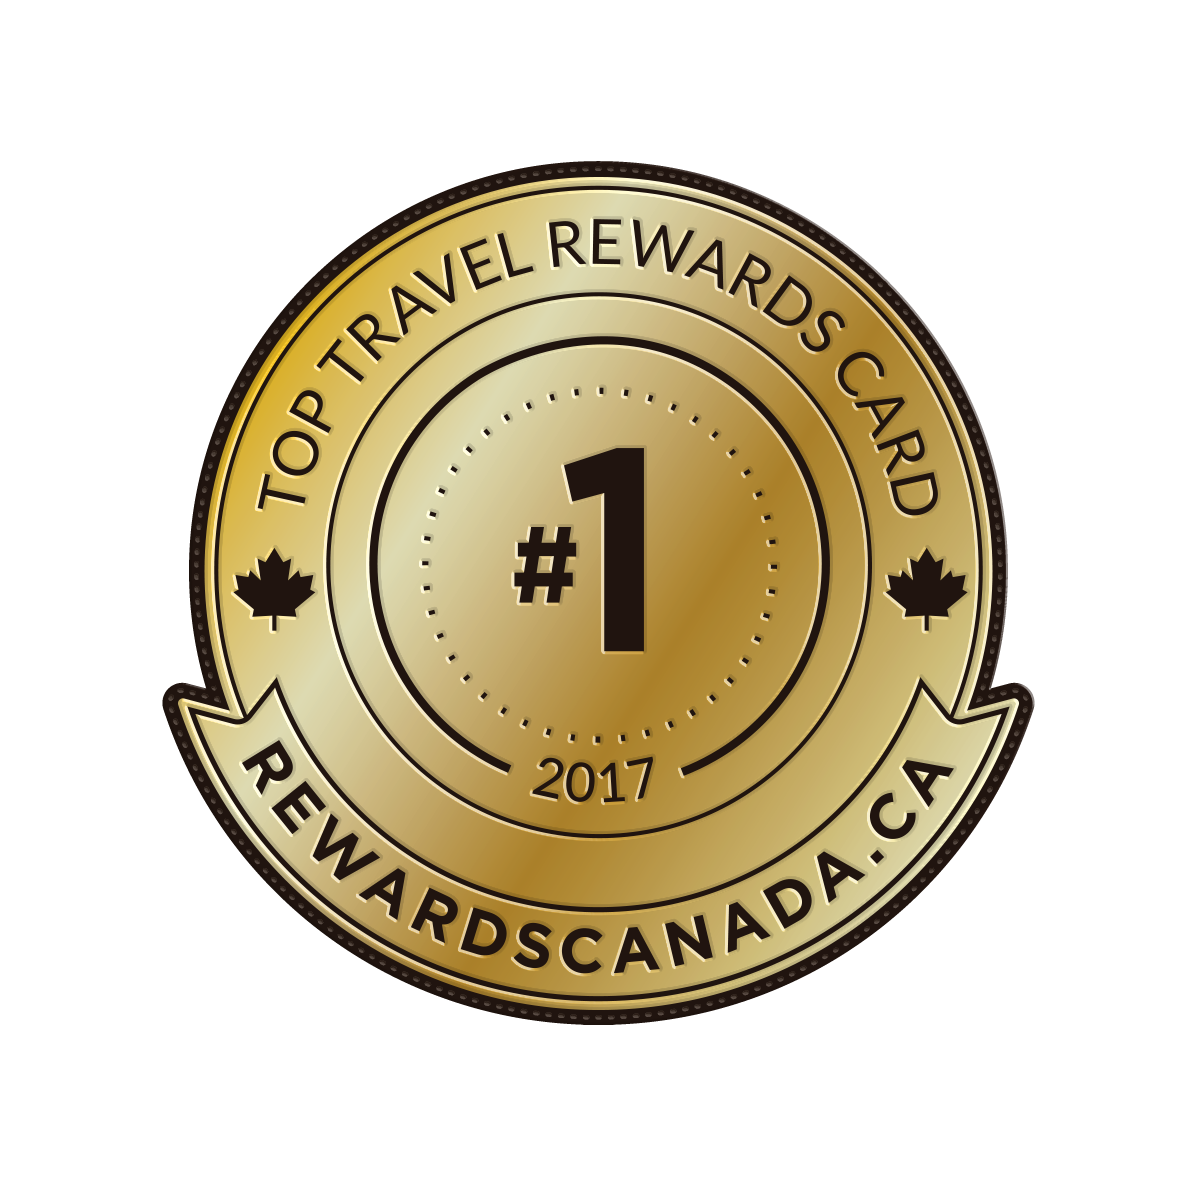 Canadas top travel rewards credit cards for 2017 top 5 cards overall magicingreecefo Image collections